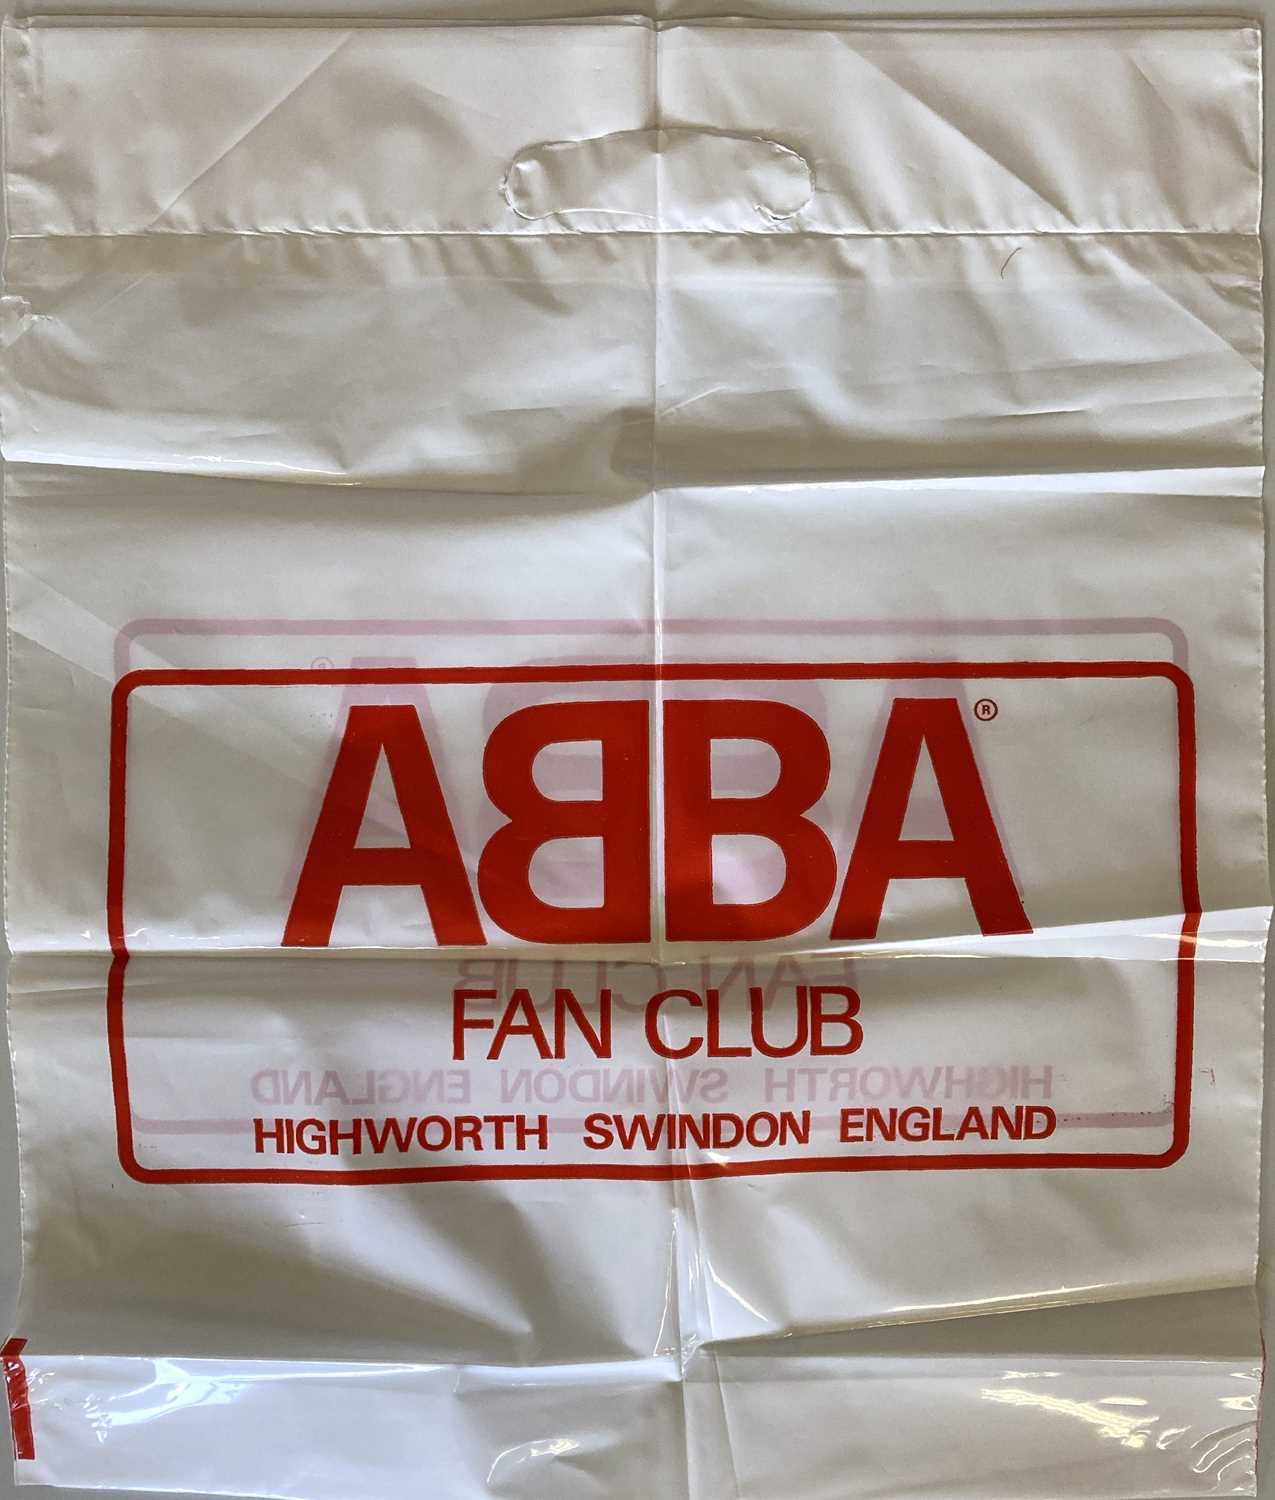 ABBA FAN CLUB PACK. - Image 3 of 3